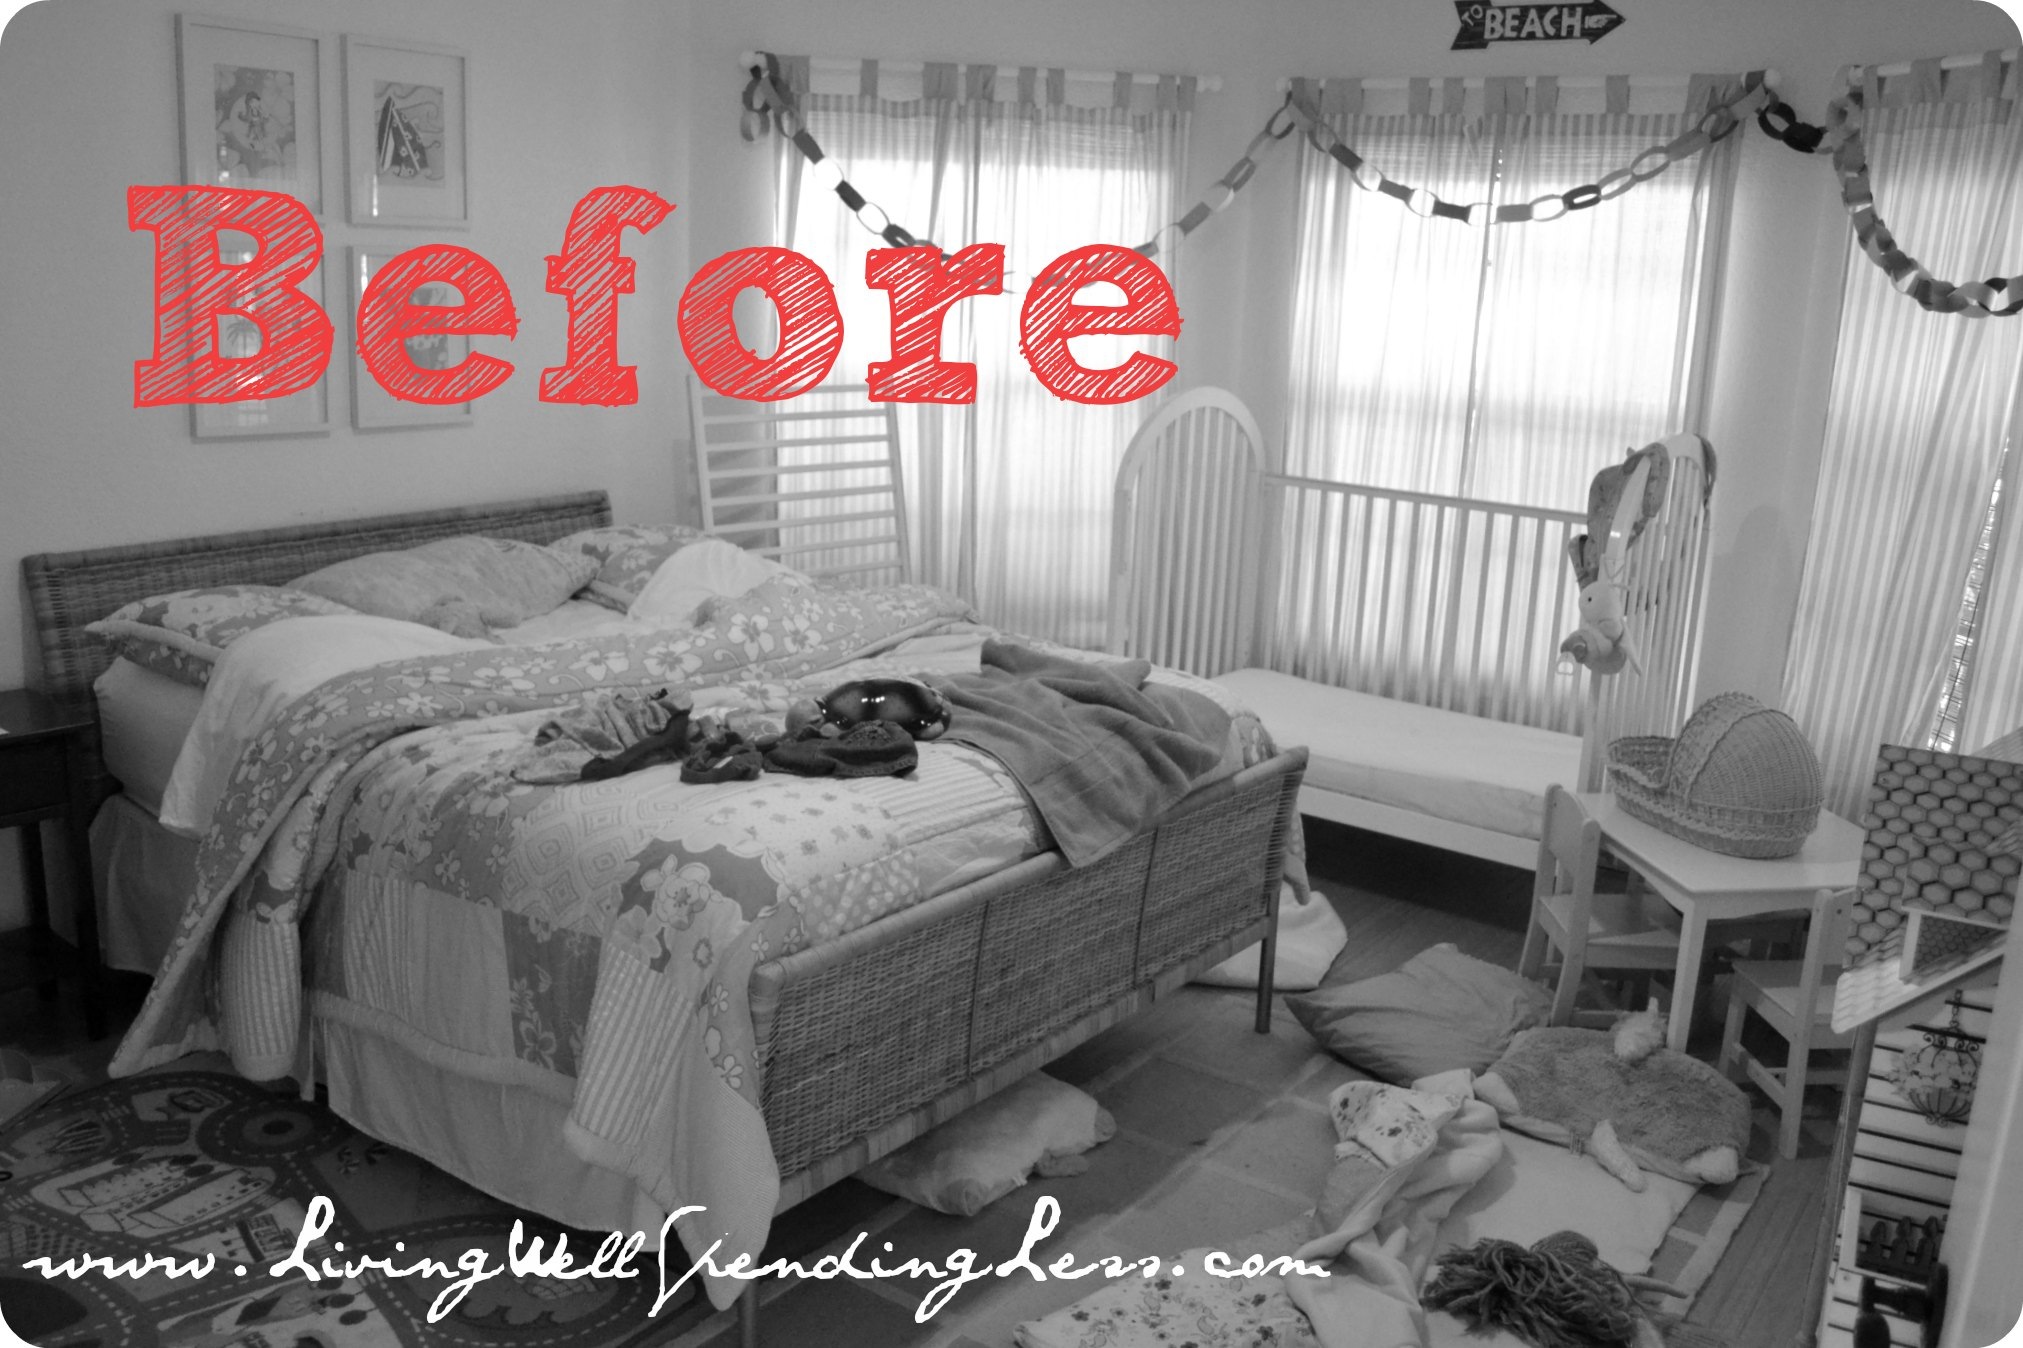 Clean your kids 39 room day 10 living well spending less for The clean bedroom